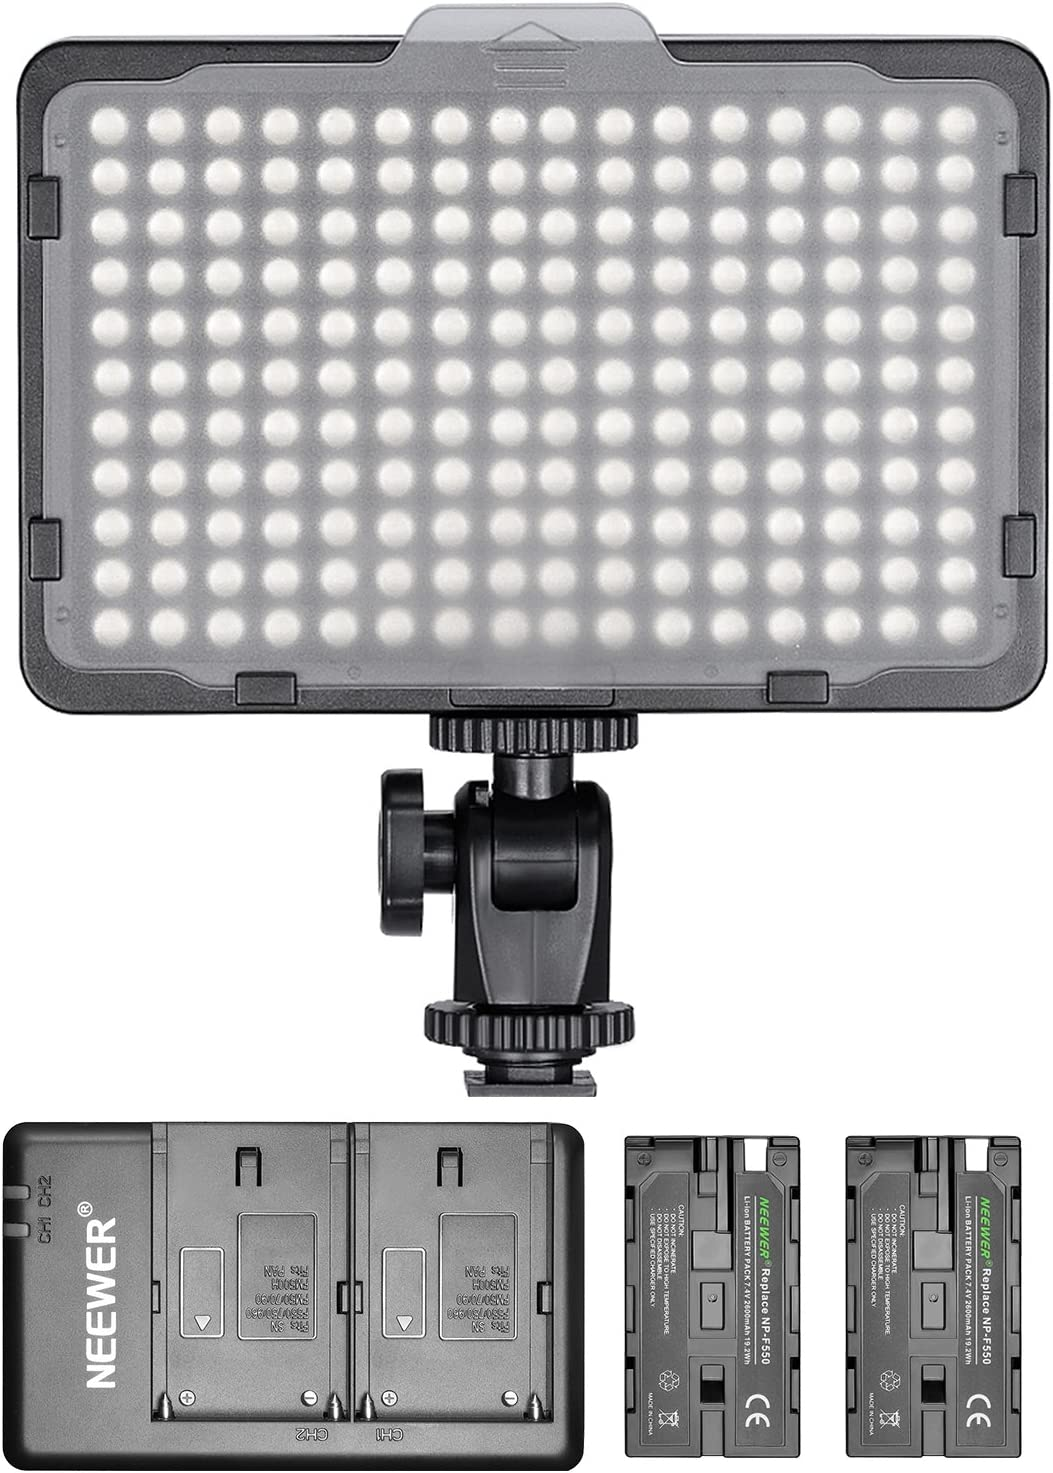 Nikon and Other Digital SLR Cameras for Photo Studio Video Shooting Neewer Dimmable 176 LED Video Light with 2-Pack 2600mAh Li-ion Battery and Dual USB Battery Charger Lighting Kit for Canon